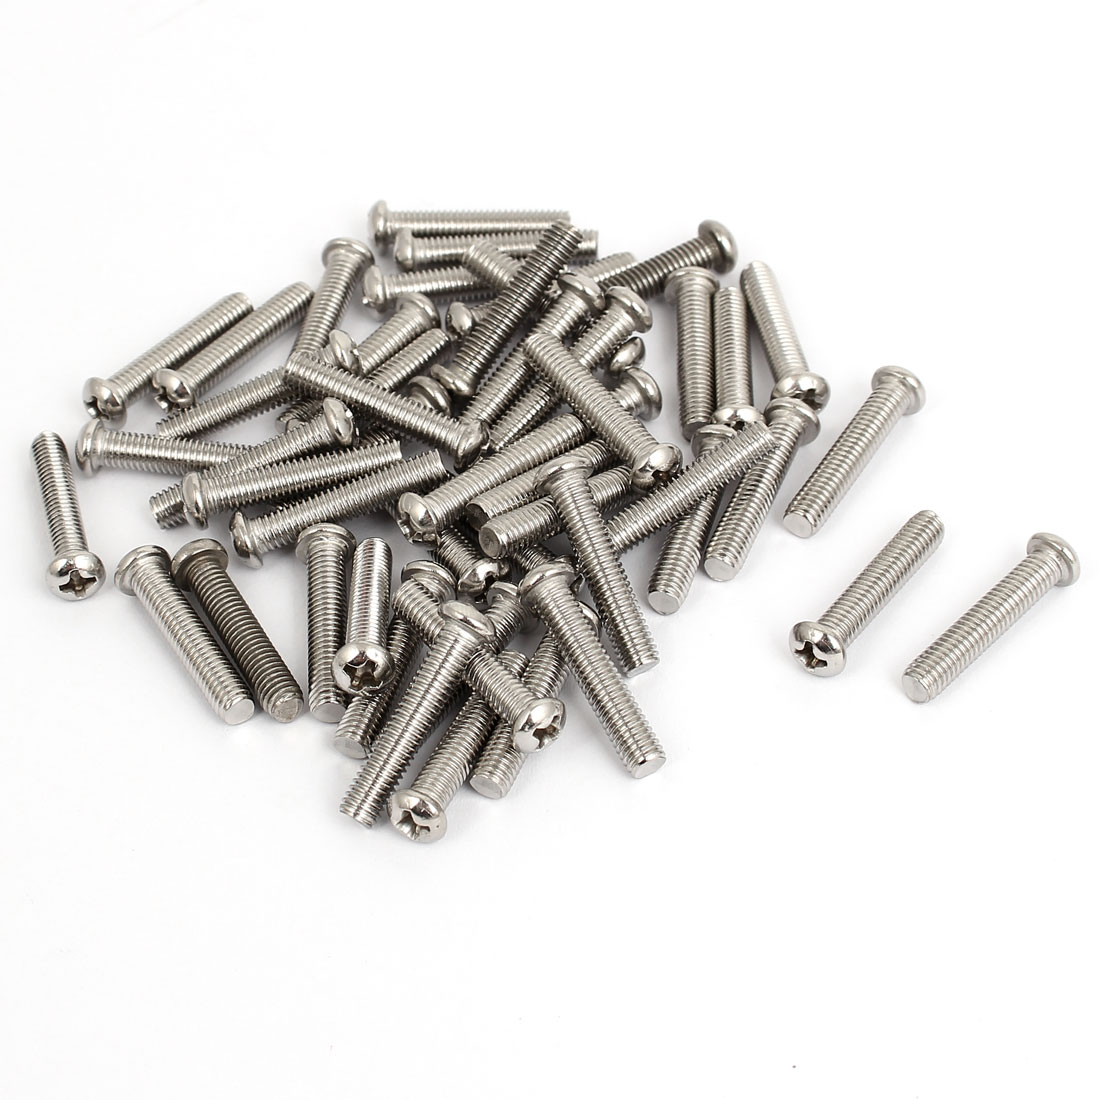 M5x25mm Stainless Steel Phillips Round Pan Head Machine Screws 50pcs